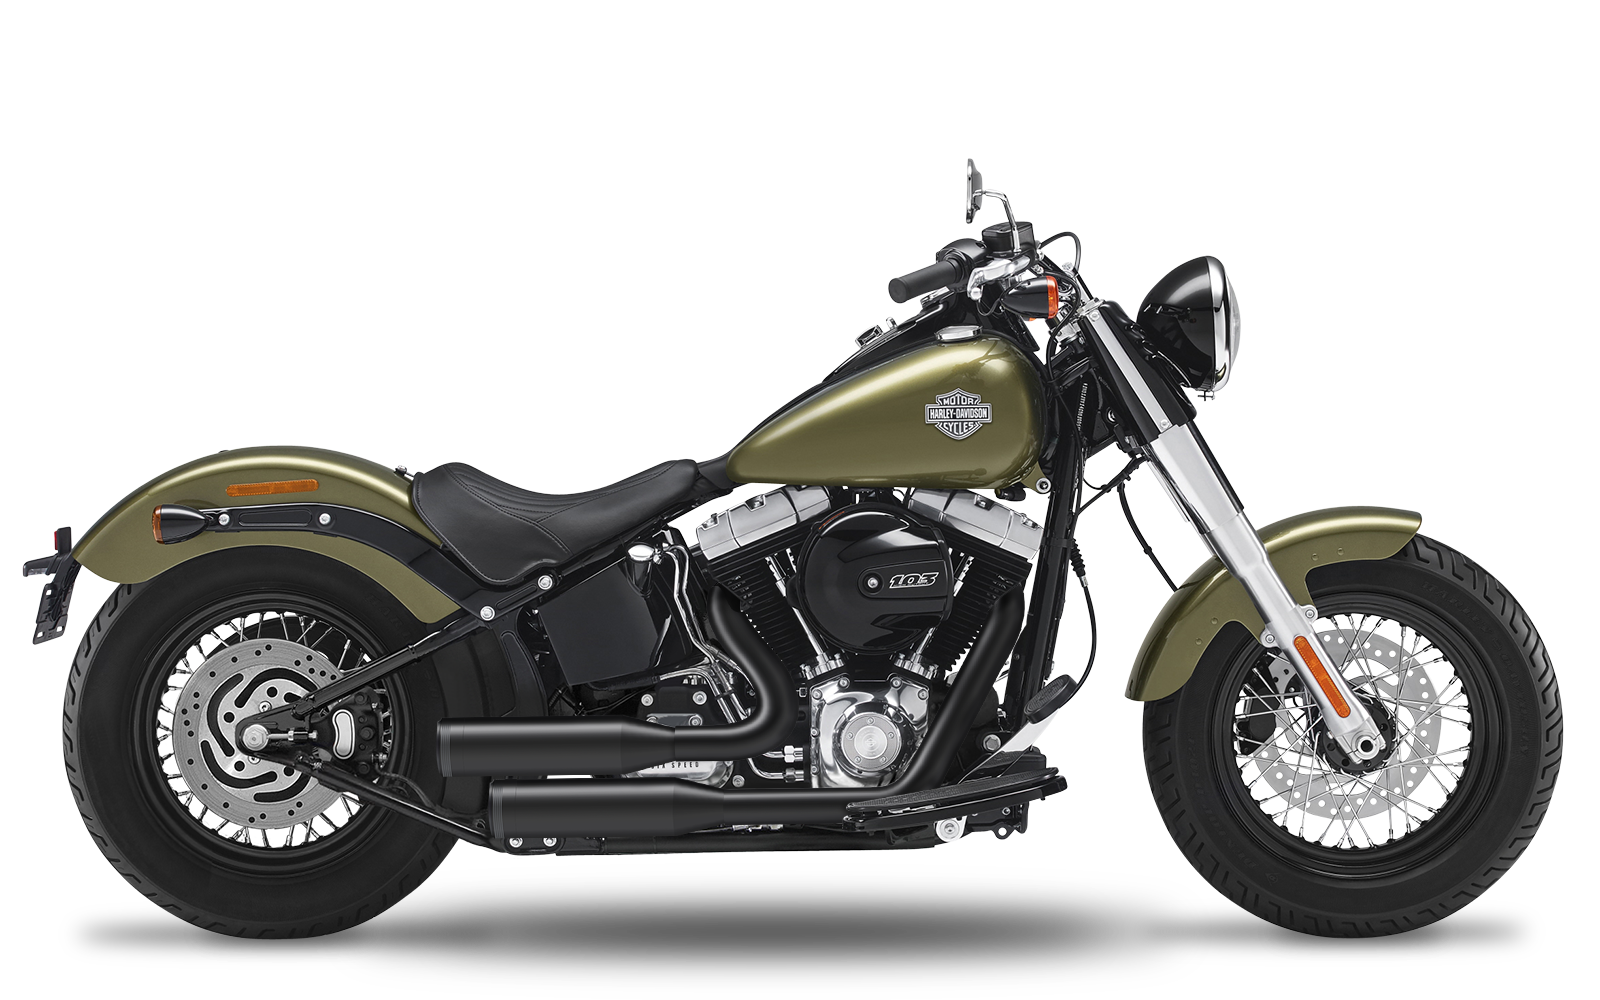 Softail - Slim S - TC110 - 2016-2017 - Complete systems